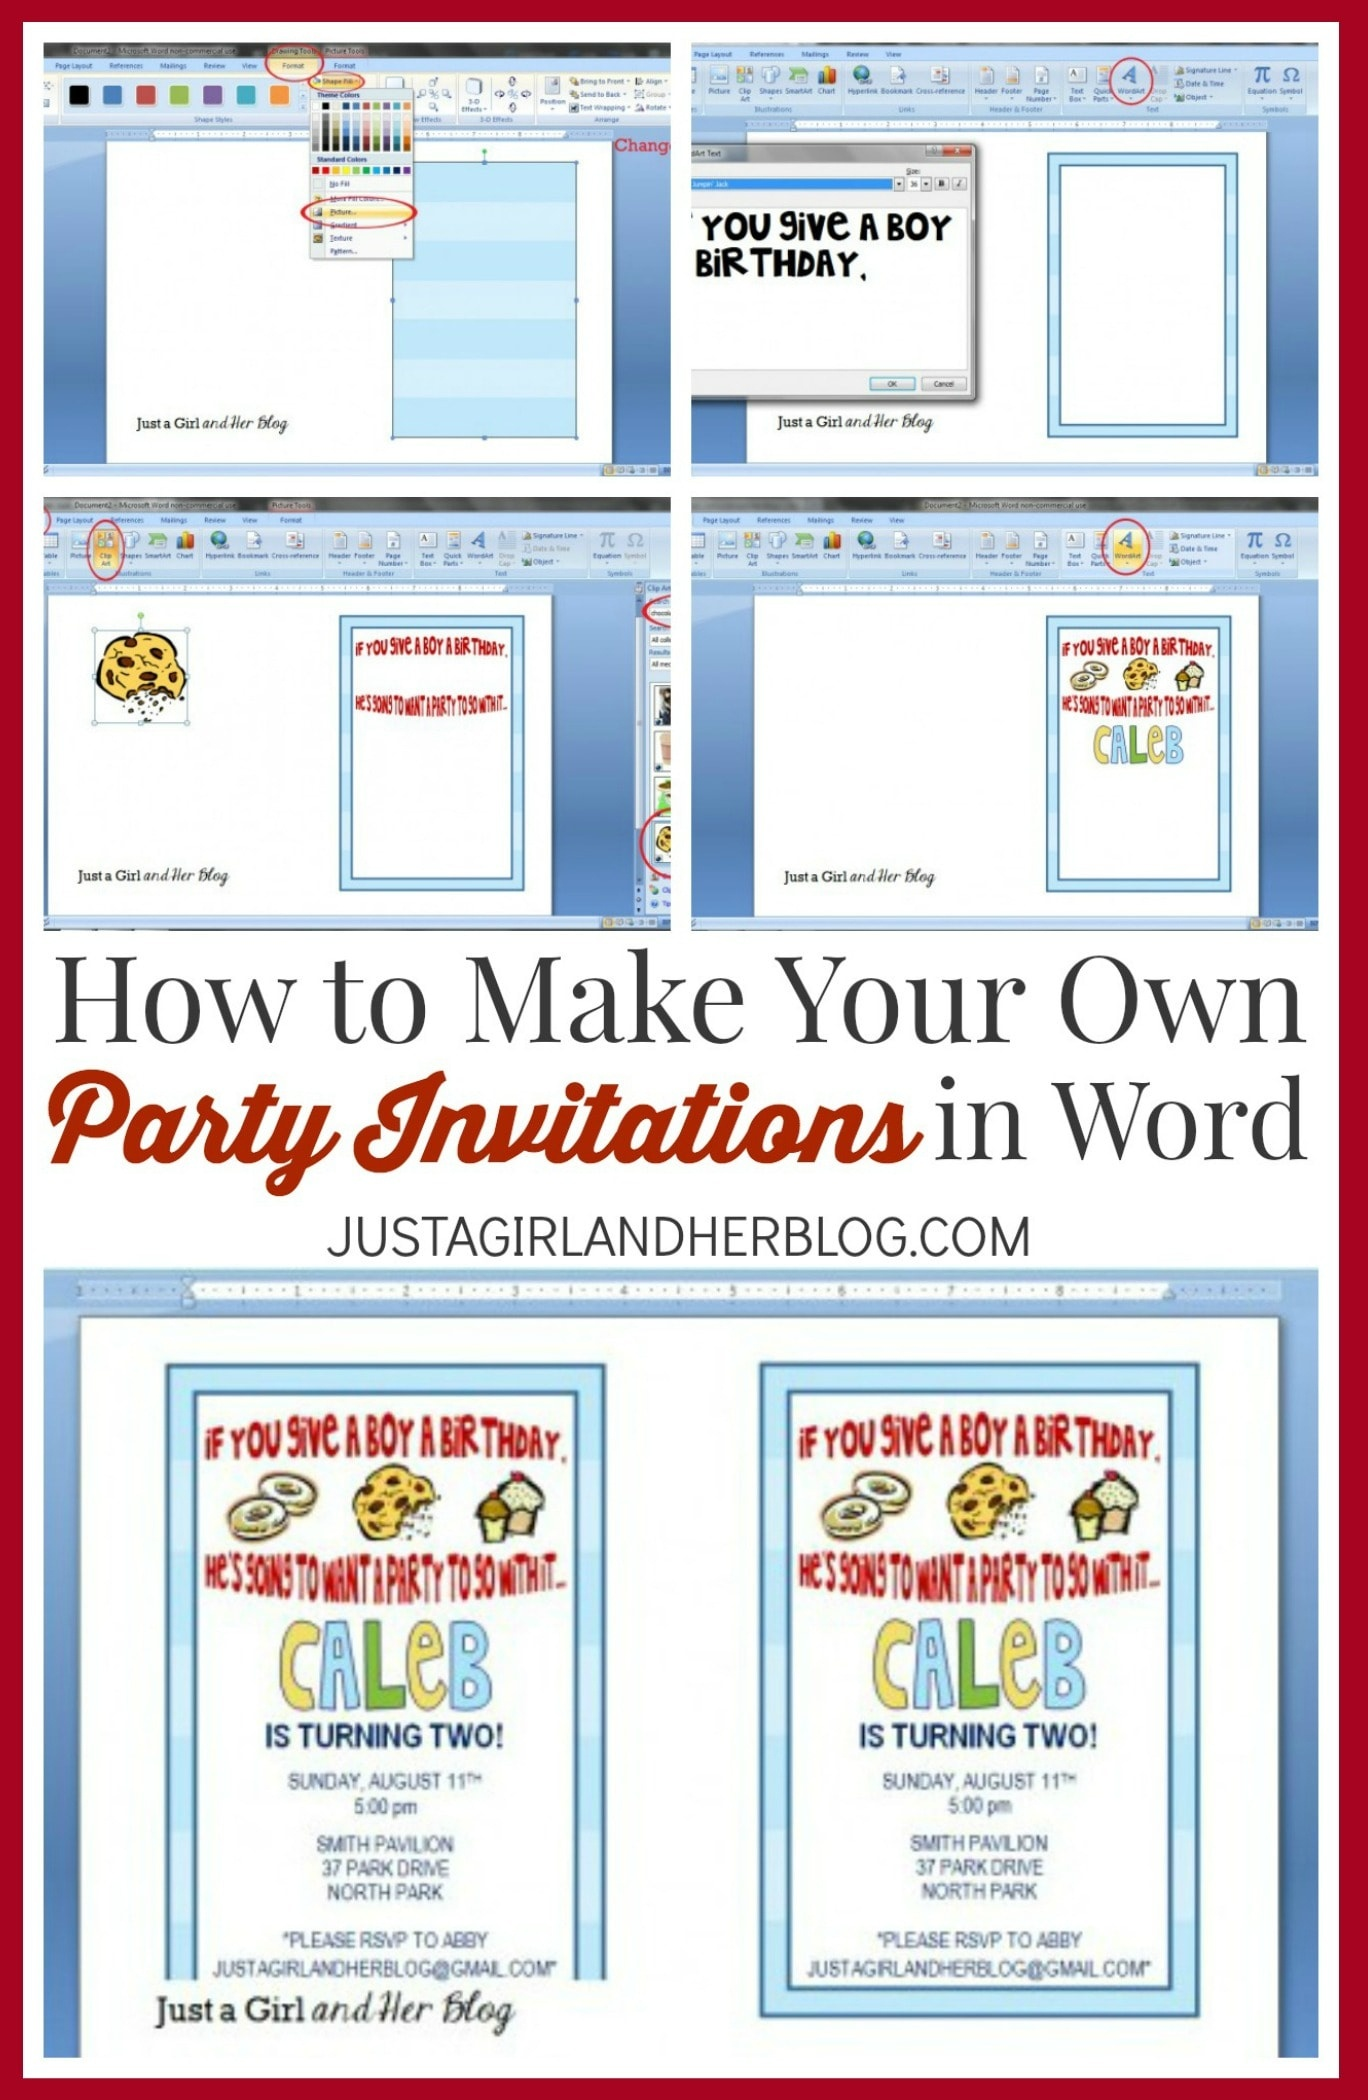 How To Make Your Own Party Invitations | Abby Lawson - Play Date Invitations Free Printable